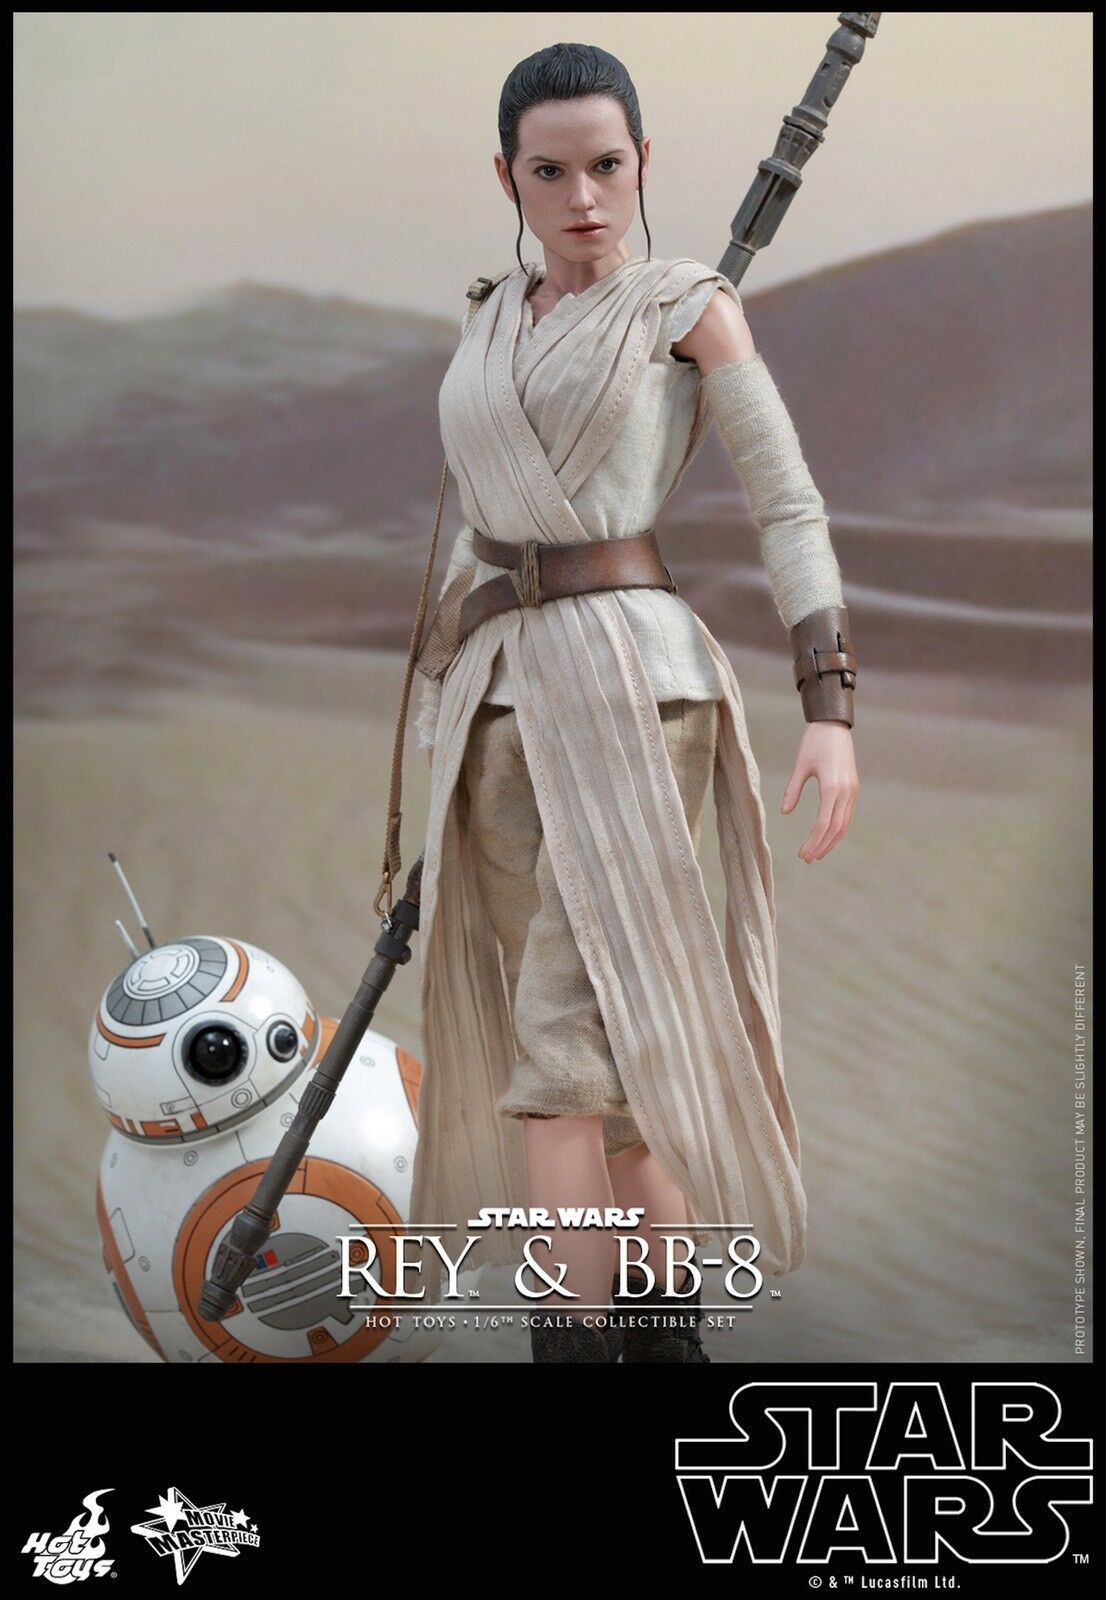 Hot Toys - Star Wars Rey & BB-8 - 1 6 scale figure